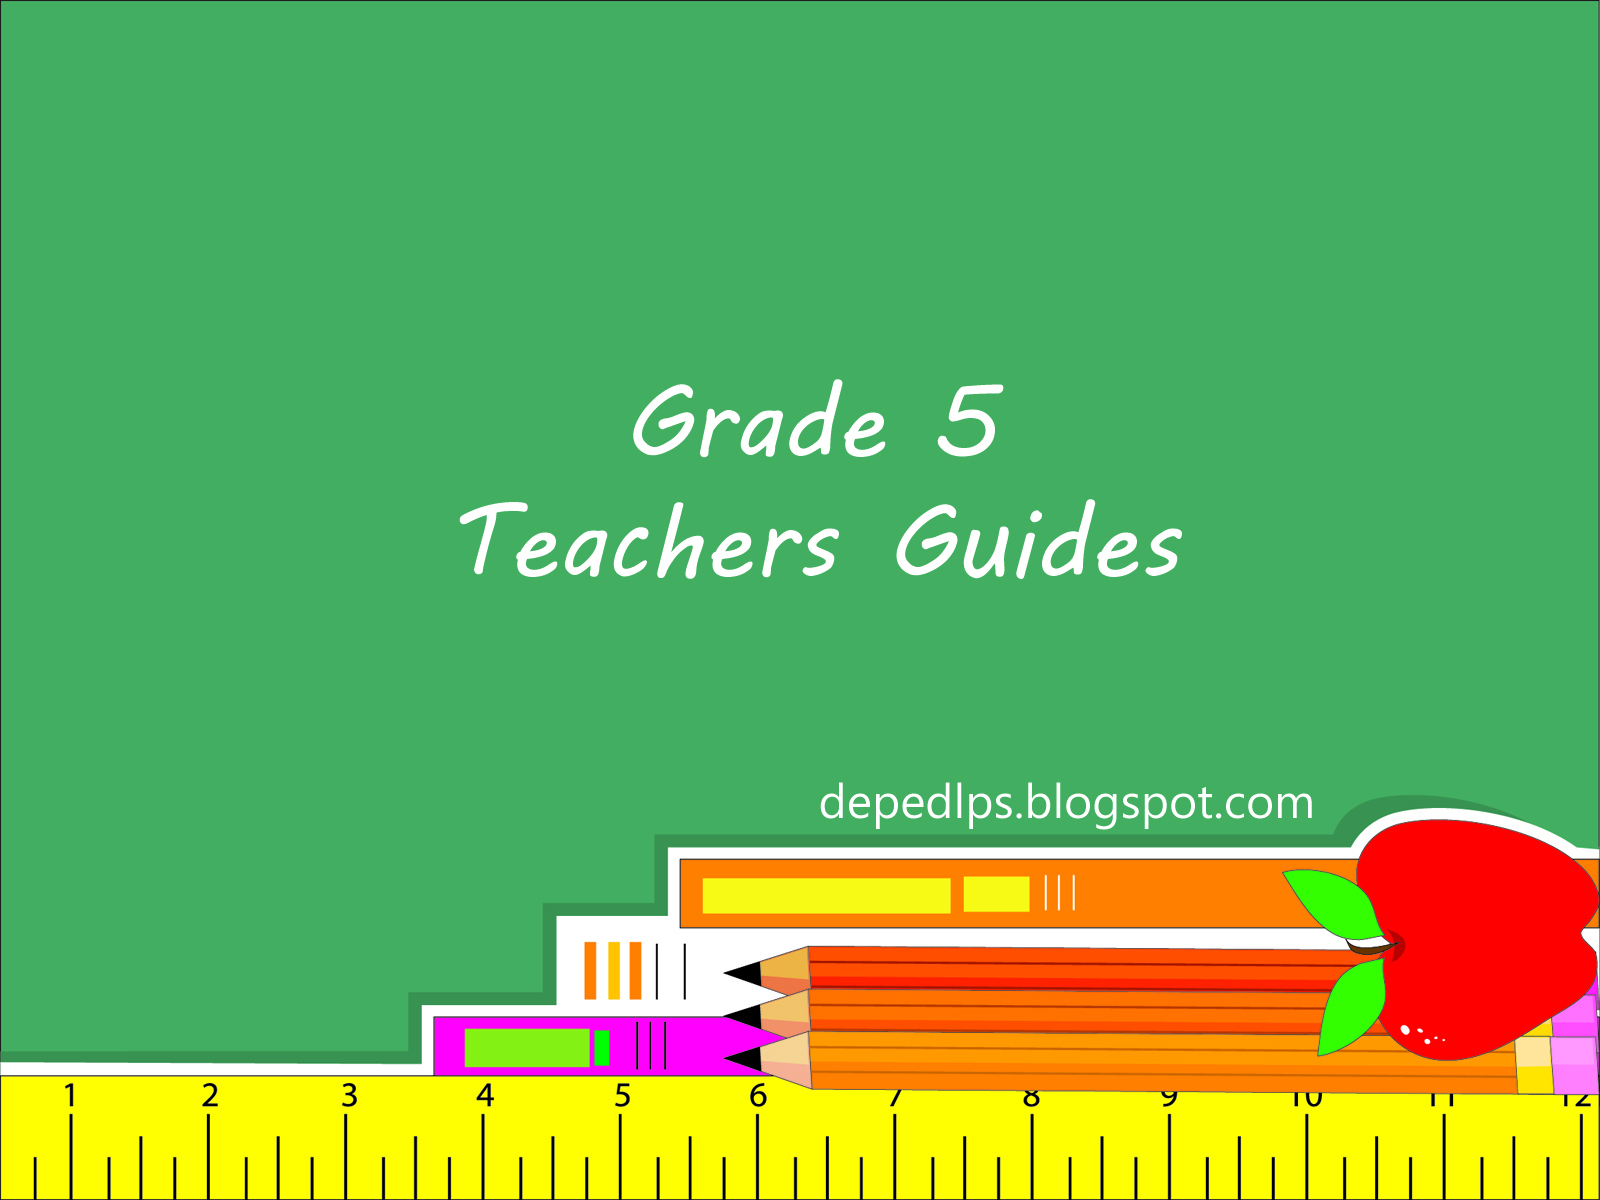 Worksheet 5 Grade grade 5 teachers guides learning materials deped lps materials